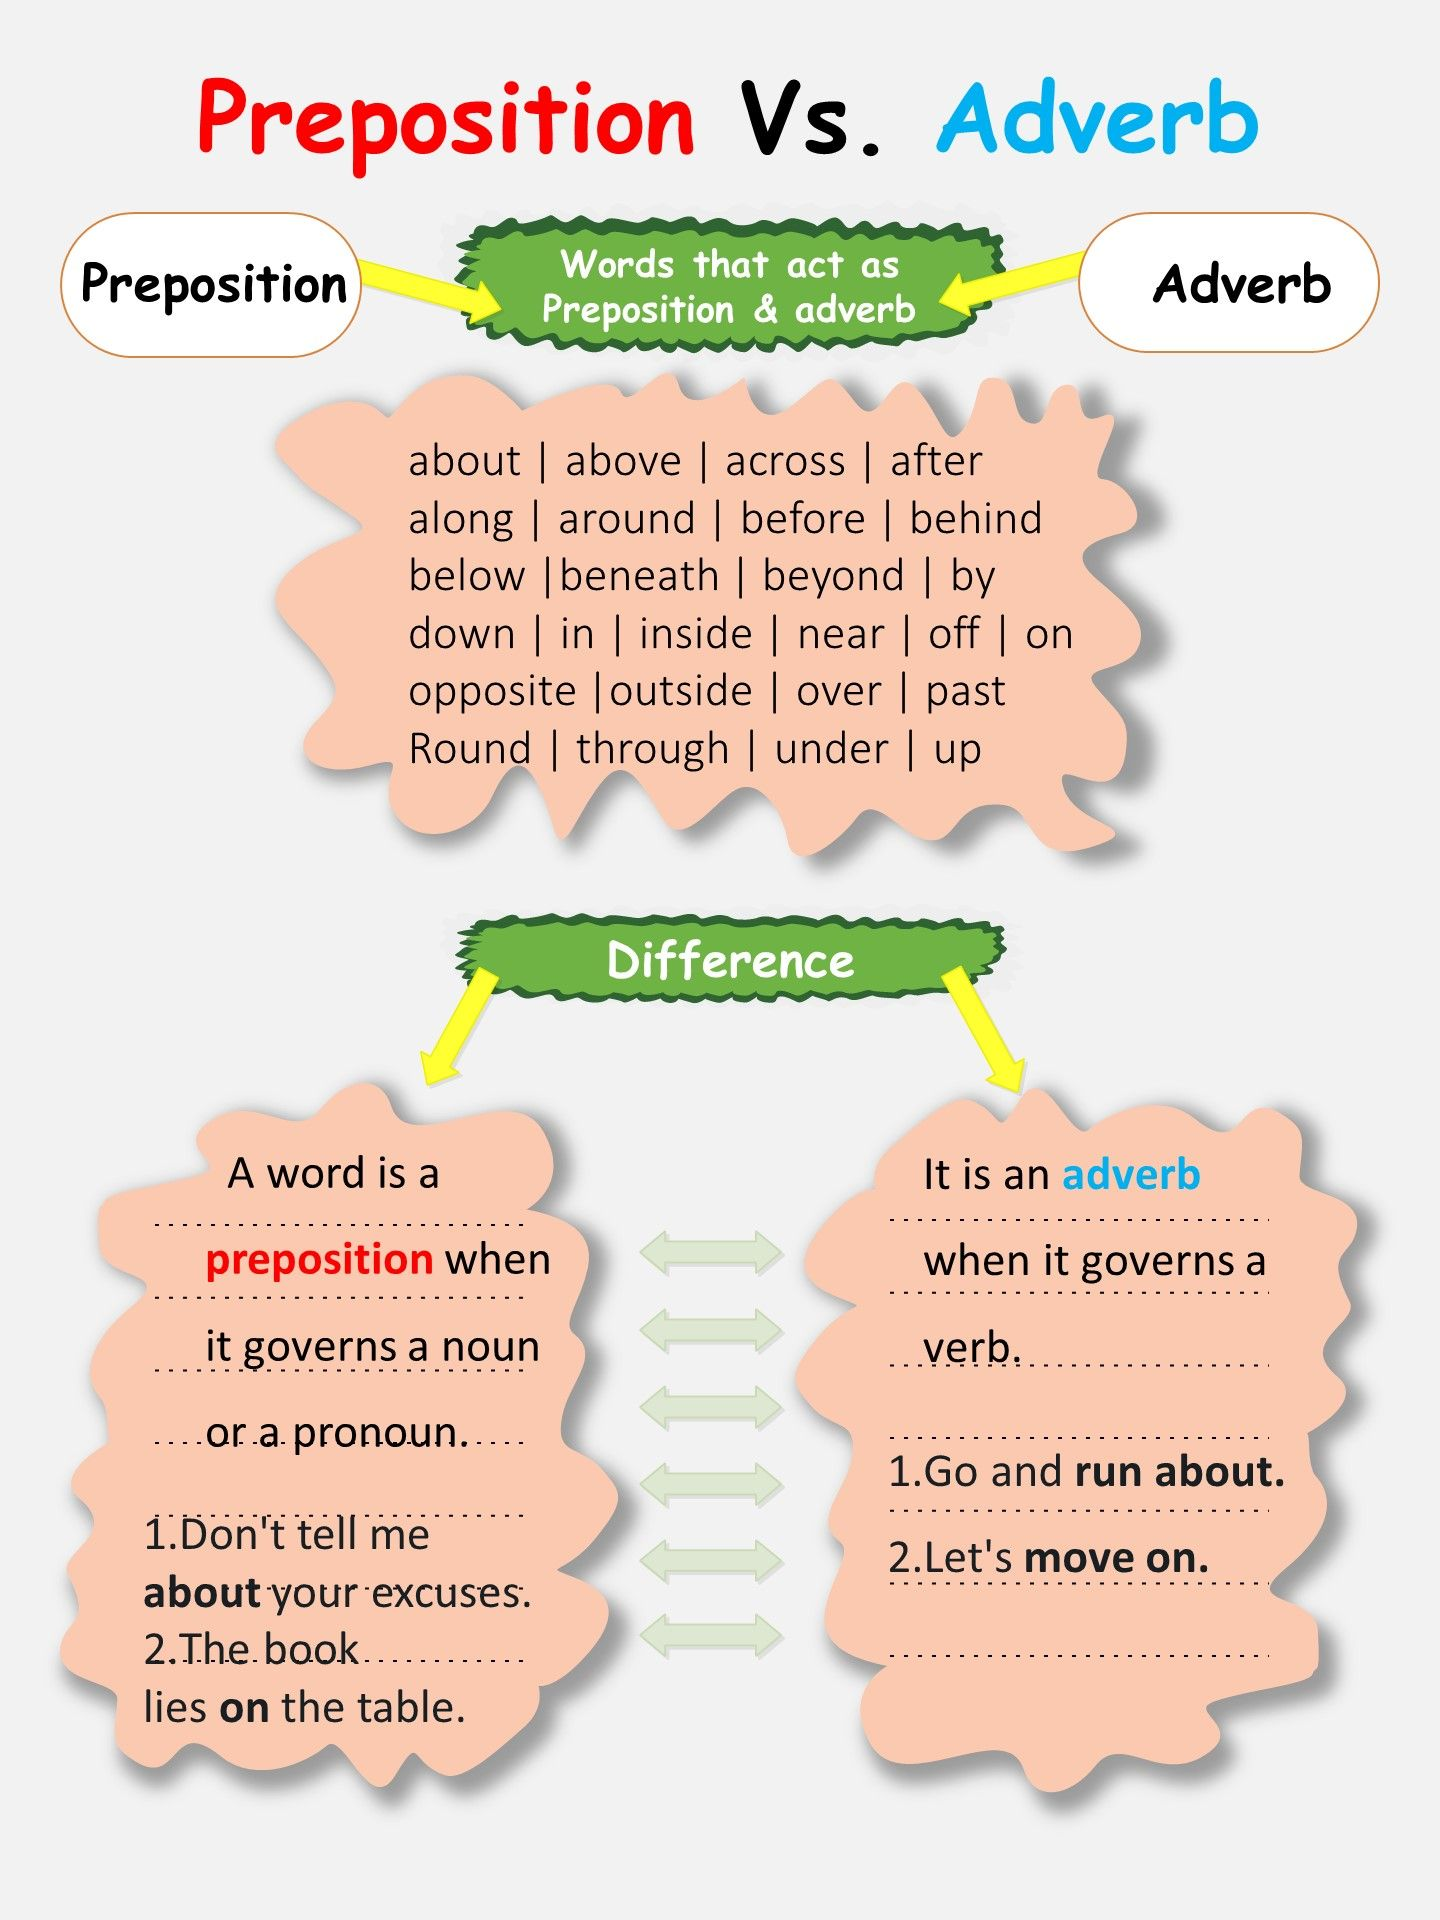 Preposition Vs Adverb